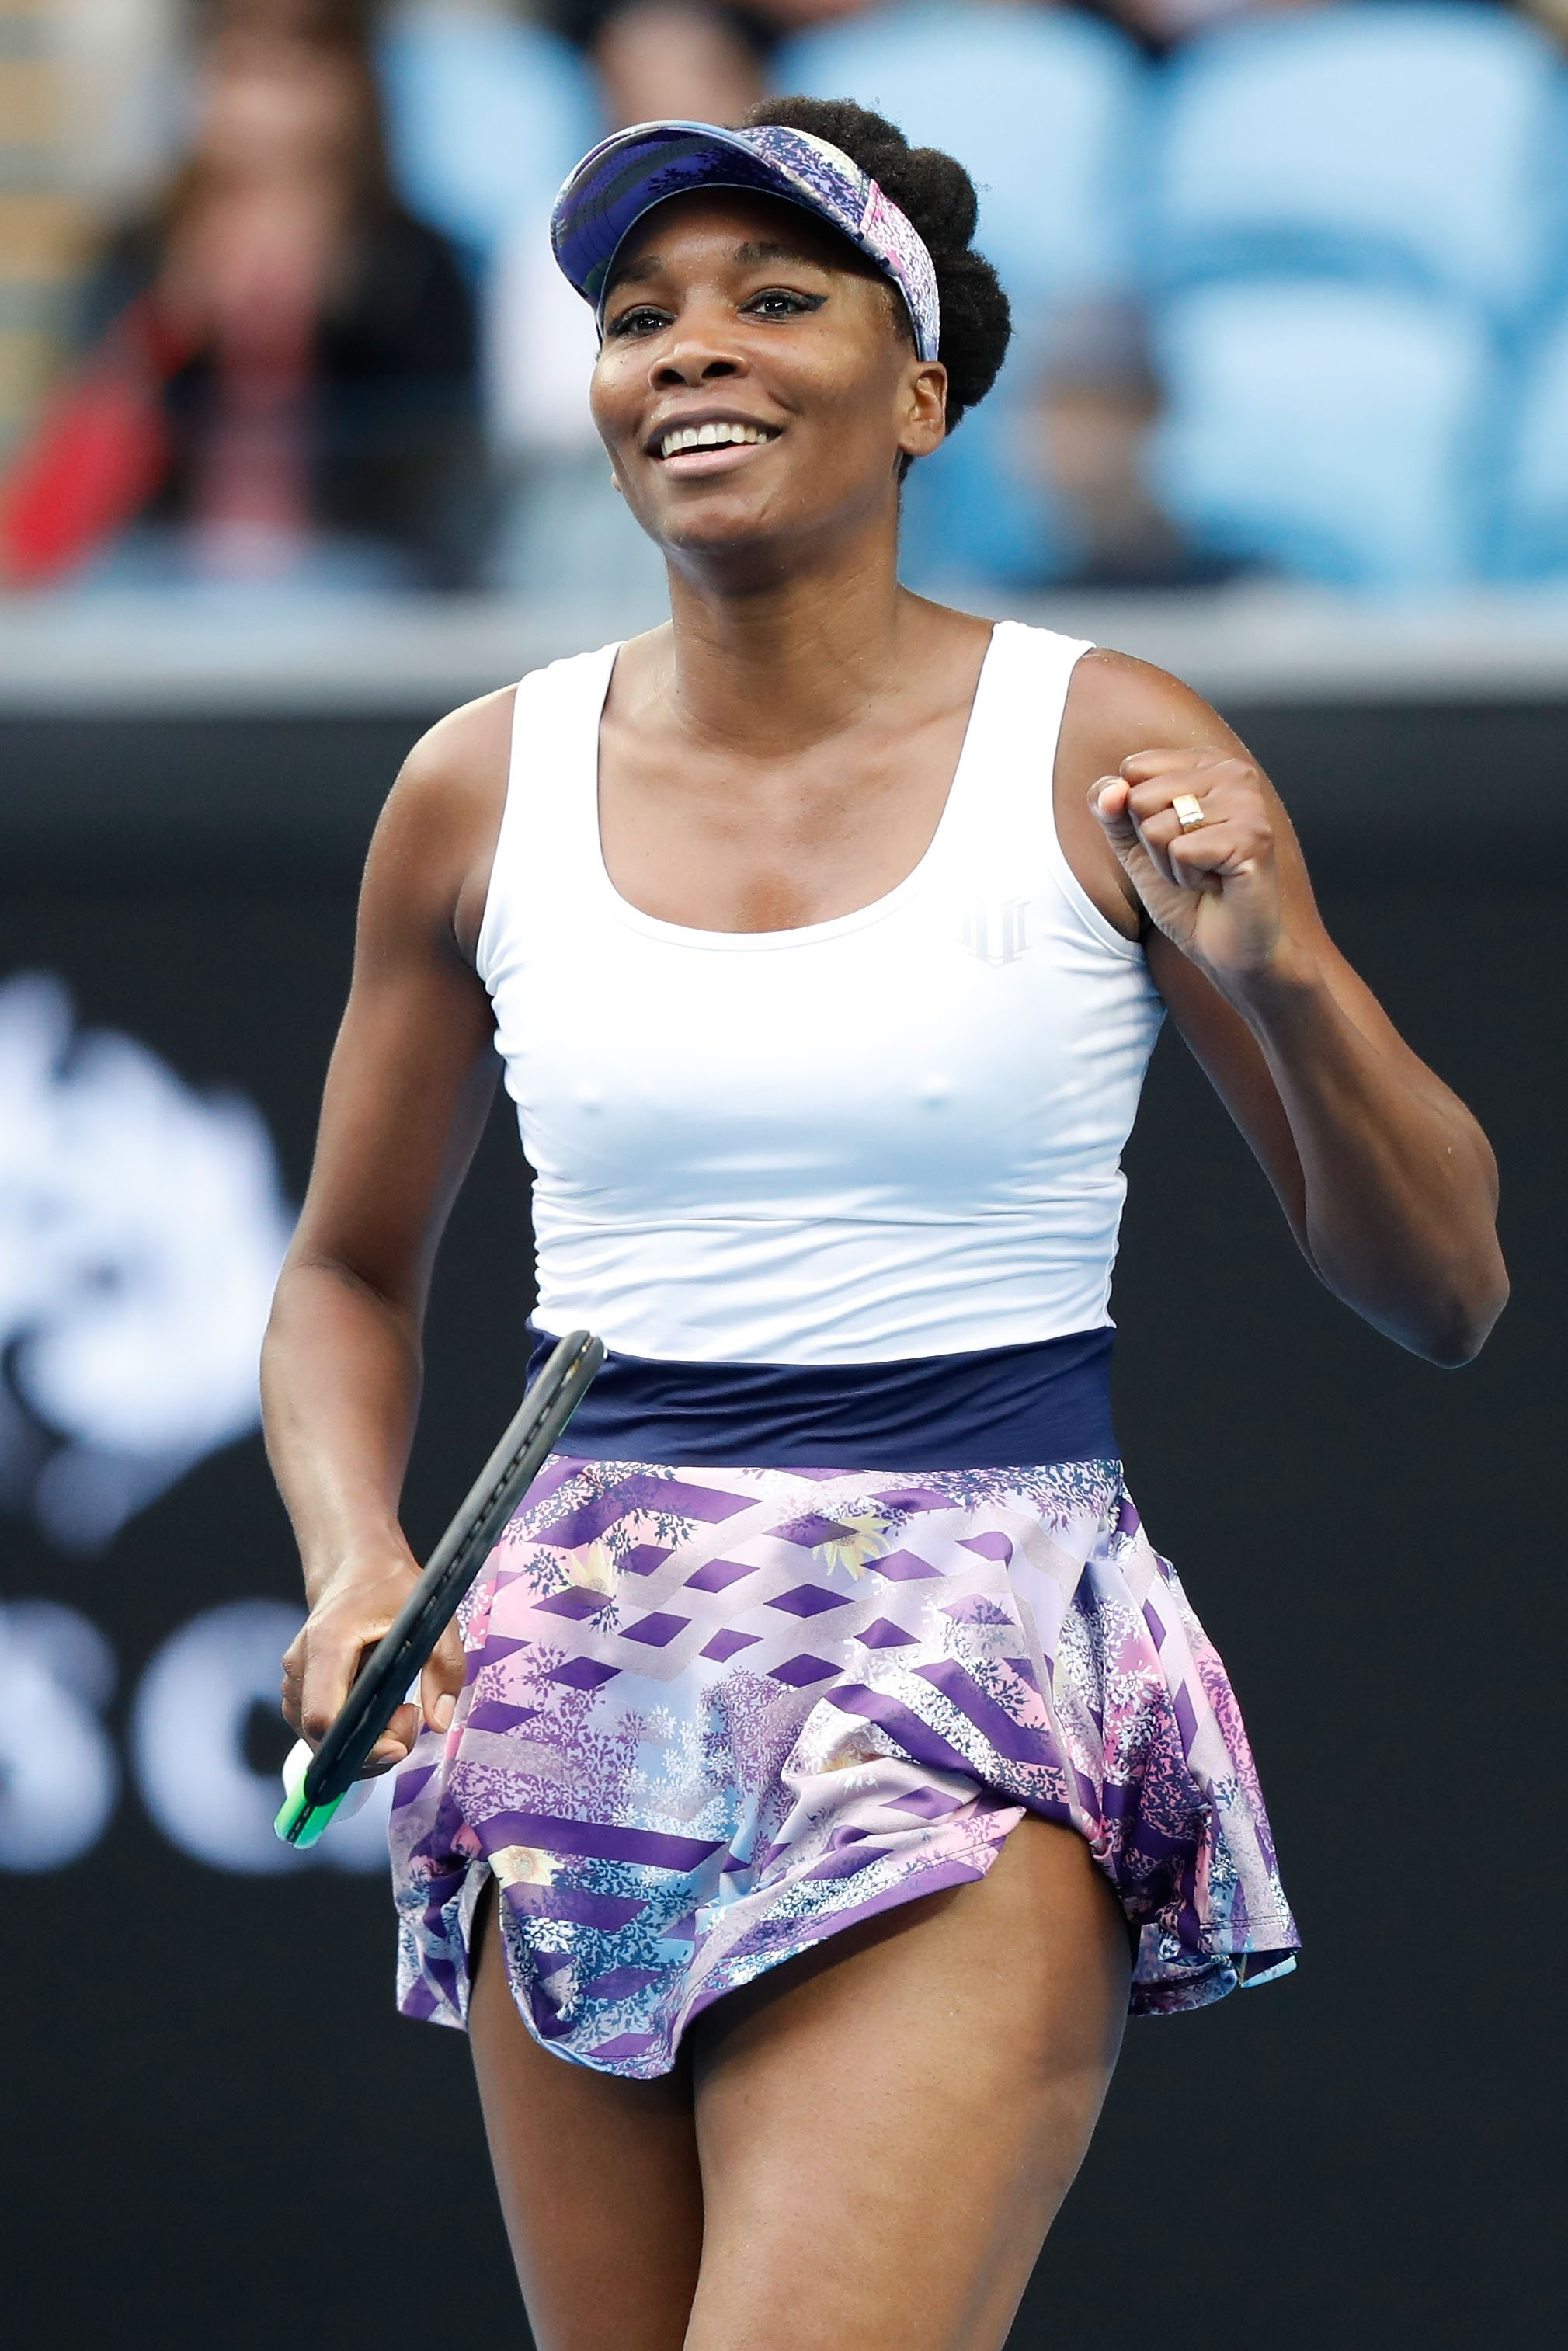 Venus Williams at the 2017 Australian Open at Melbourne Park on January 20, 2017 in Melbourne, Australia.| Source; Getty Images